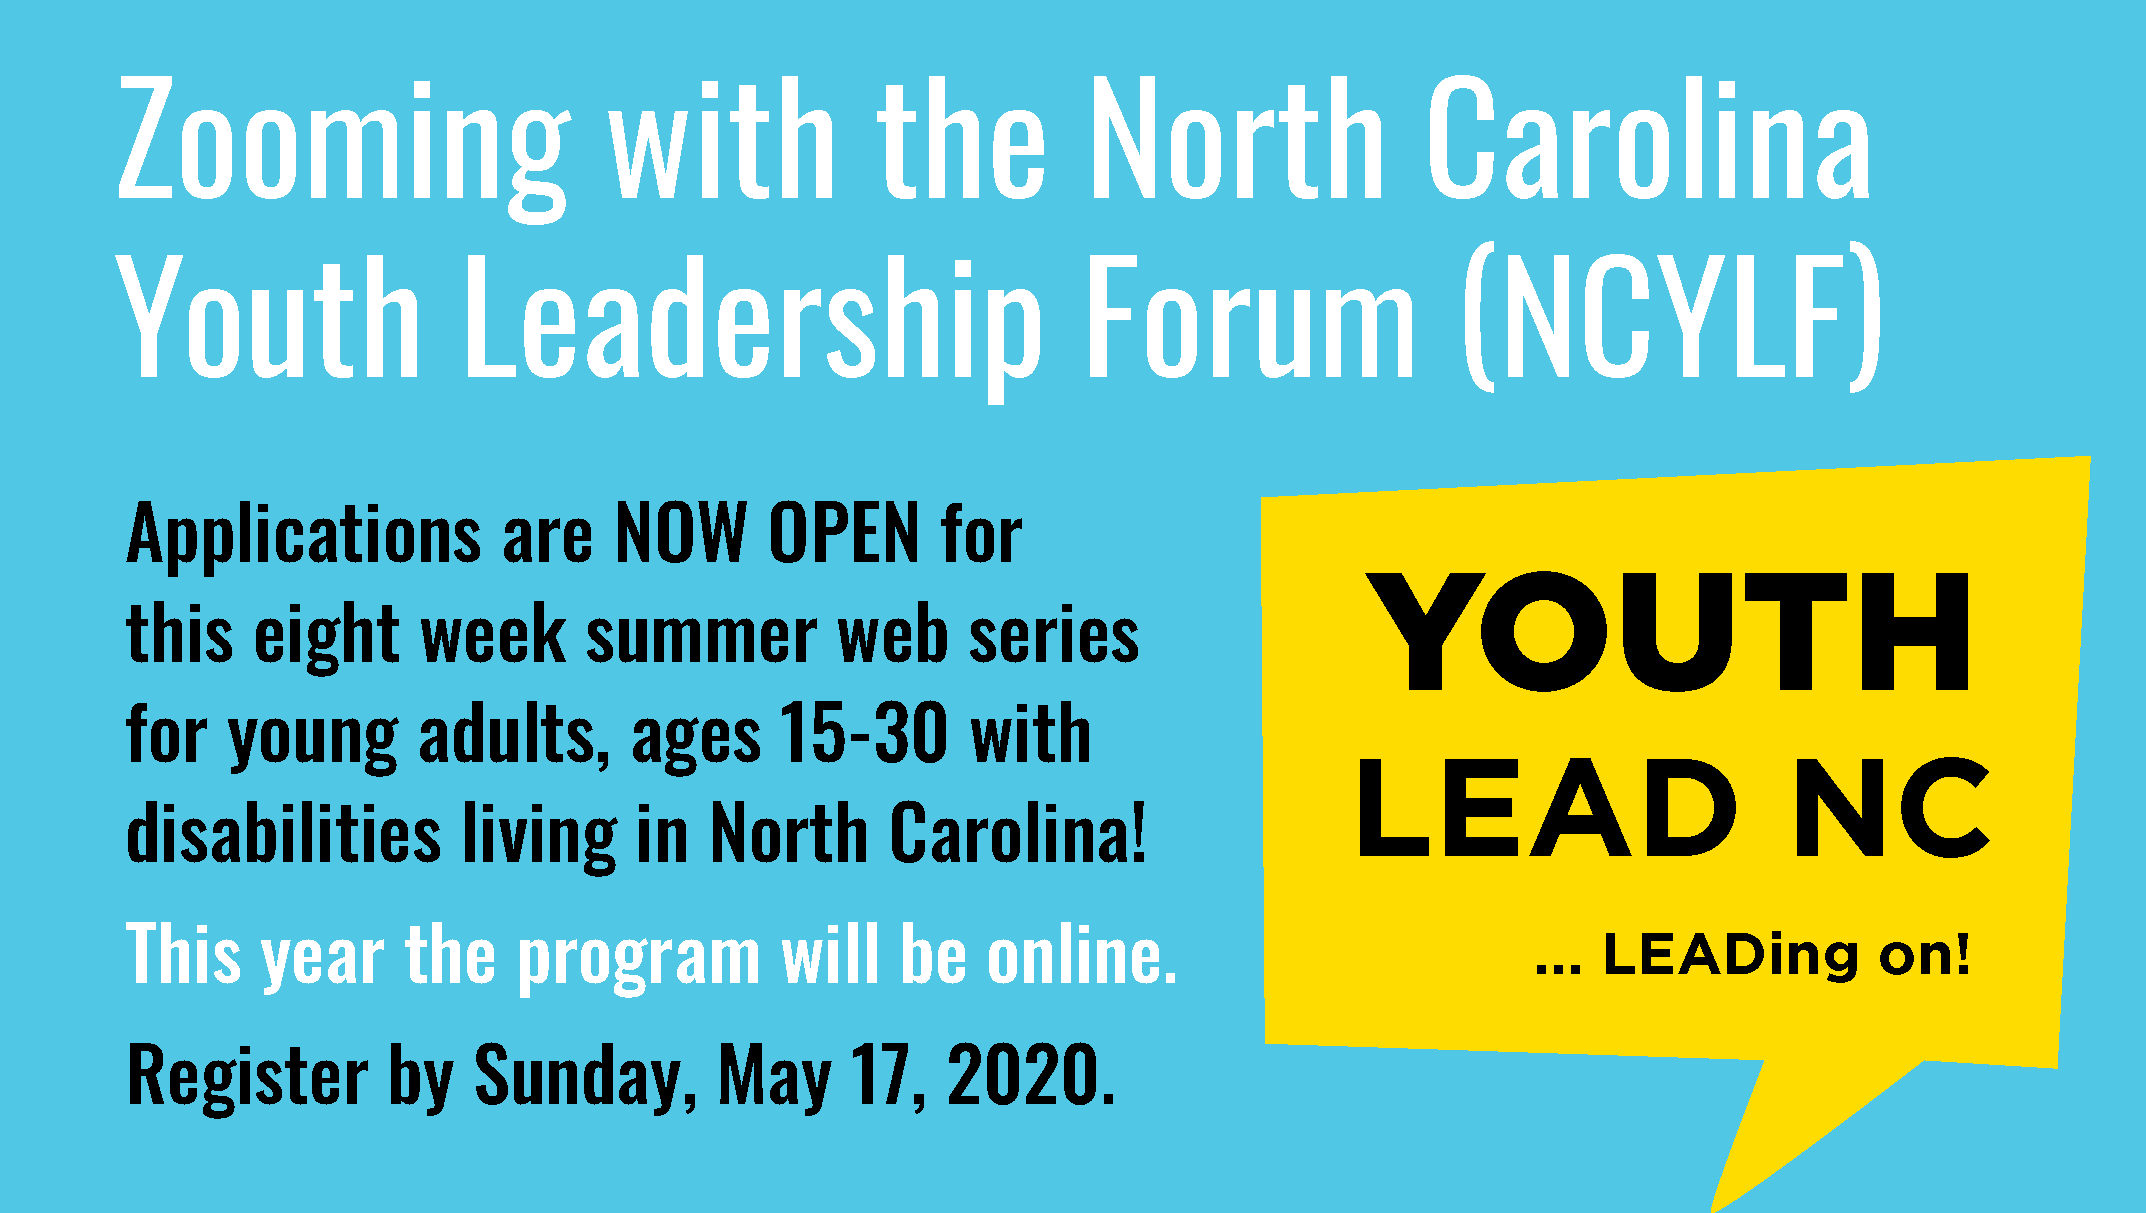 YouthLeadNC